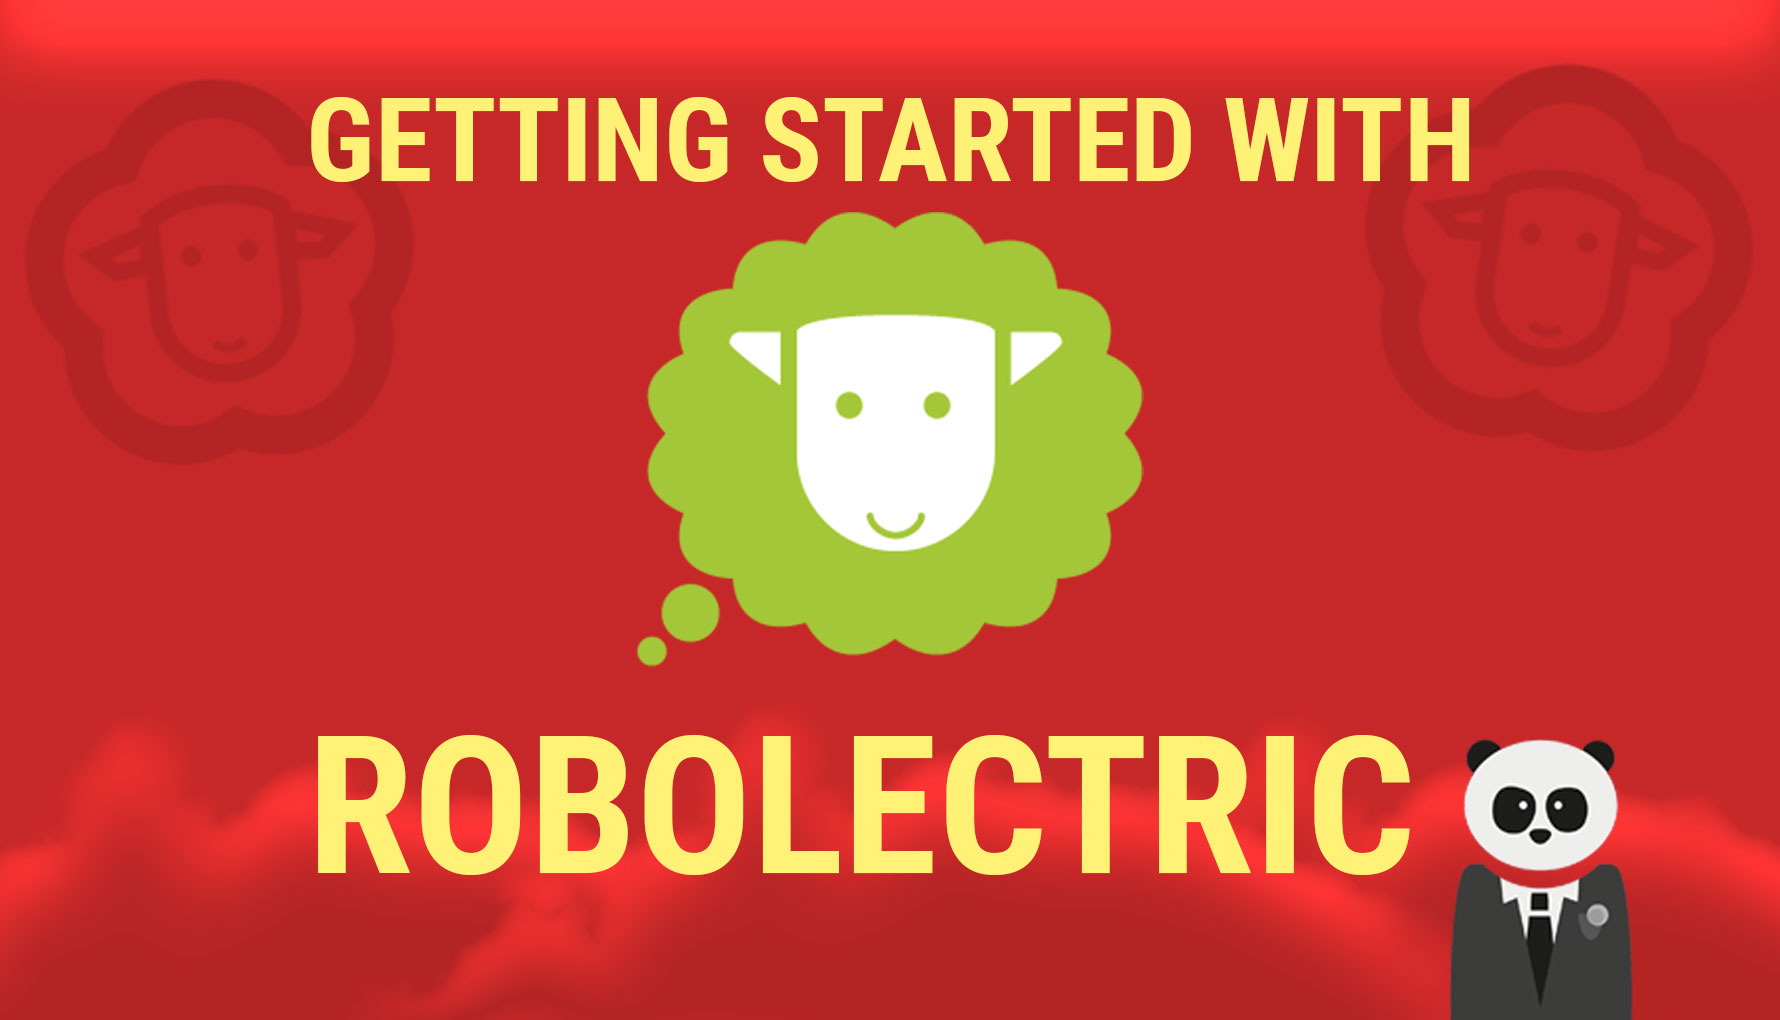 Getting Started with Robolectric: Exploring TDD with Android